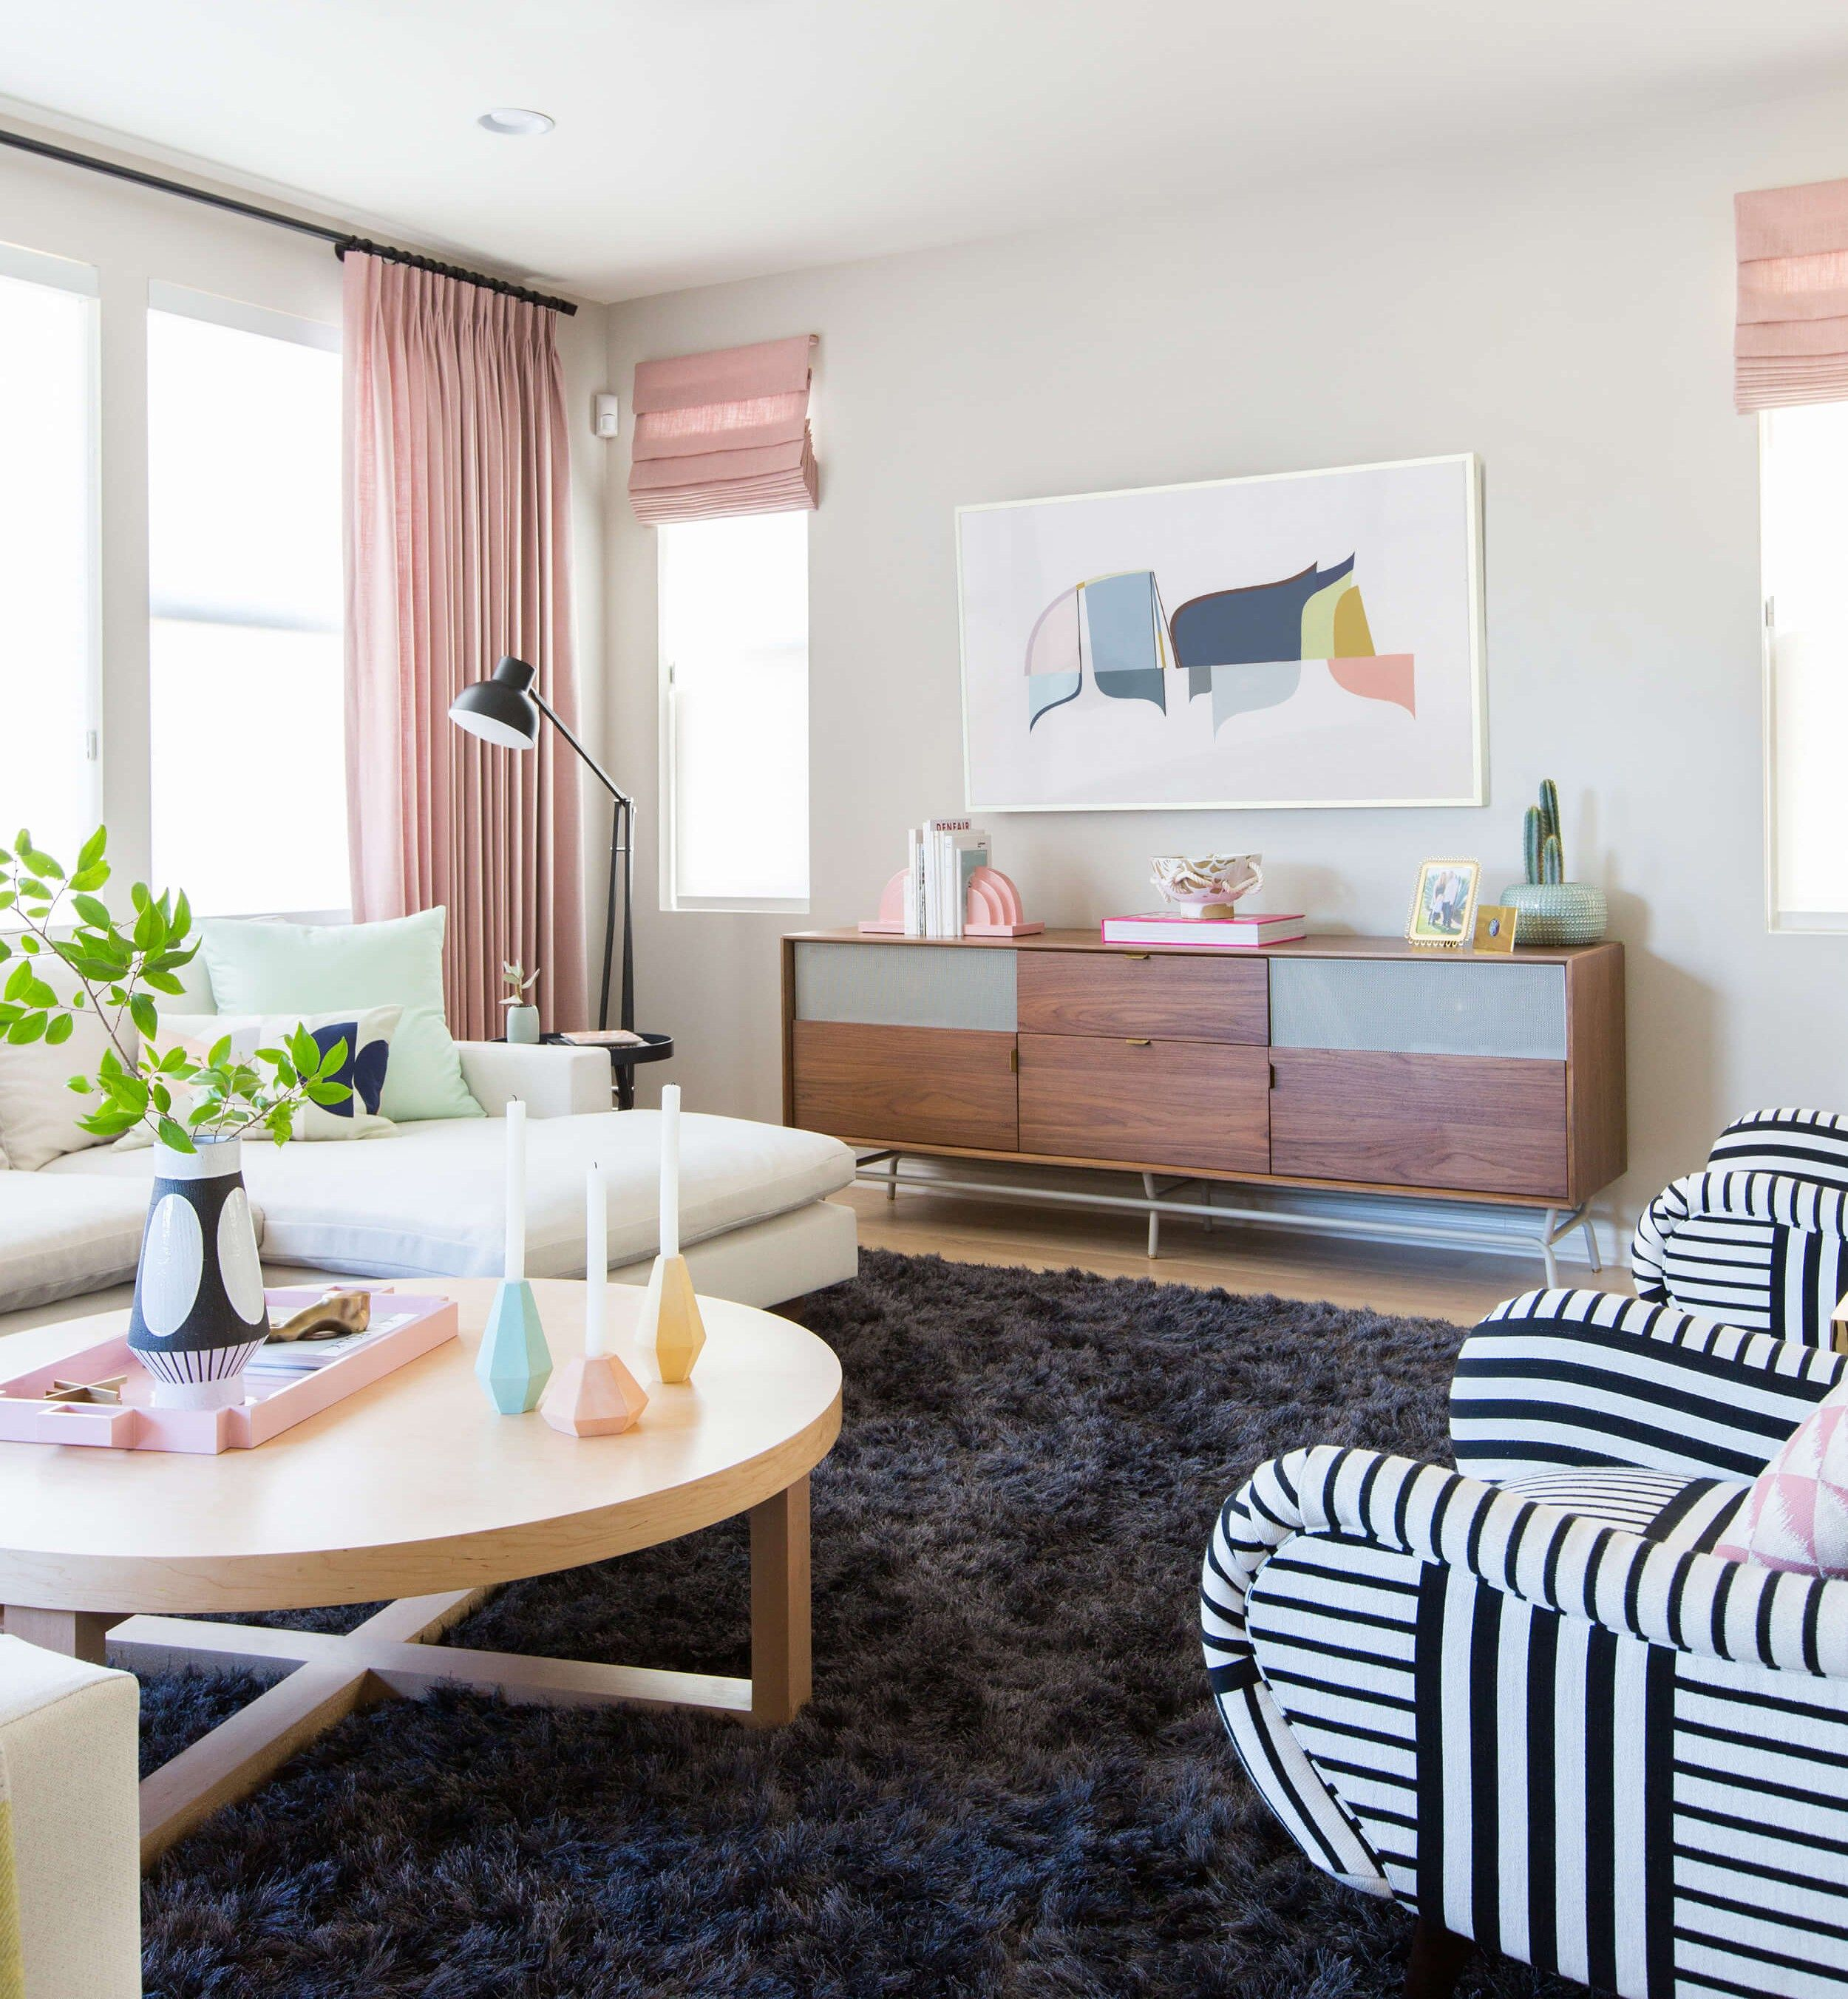 Modern living room pink accents decor in pinterest room